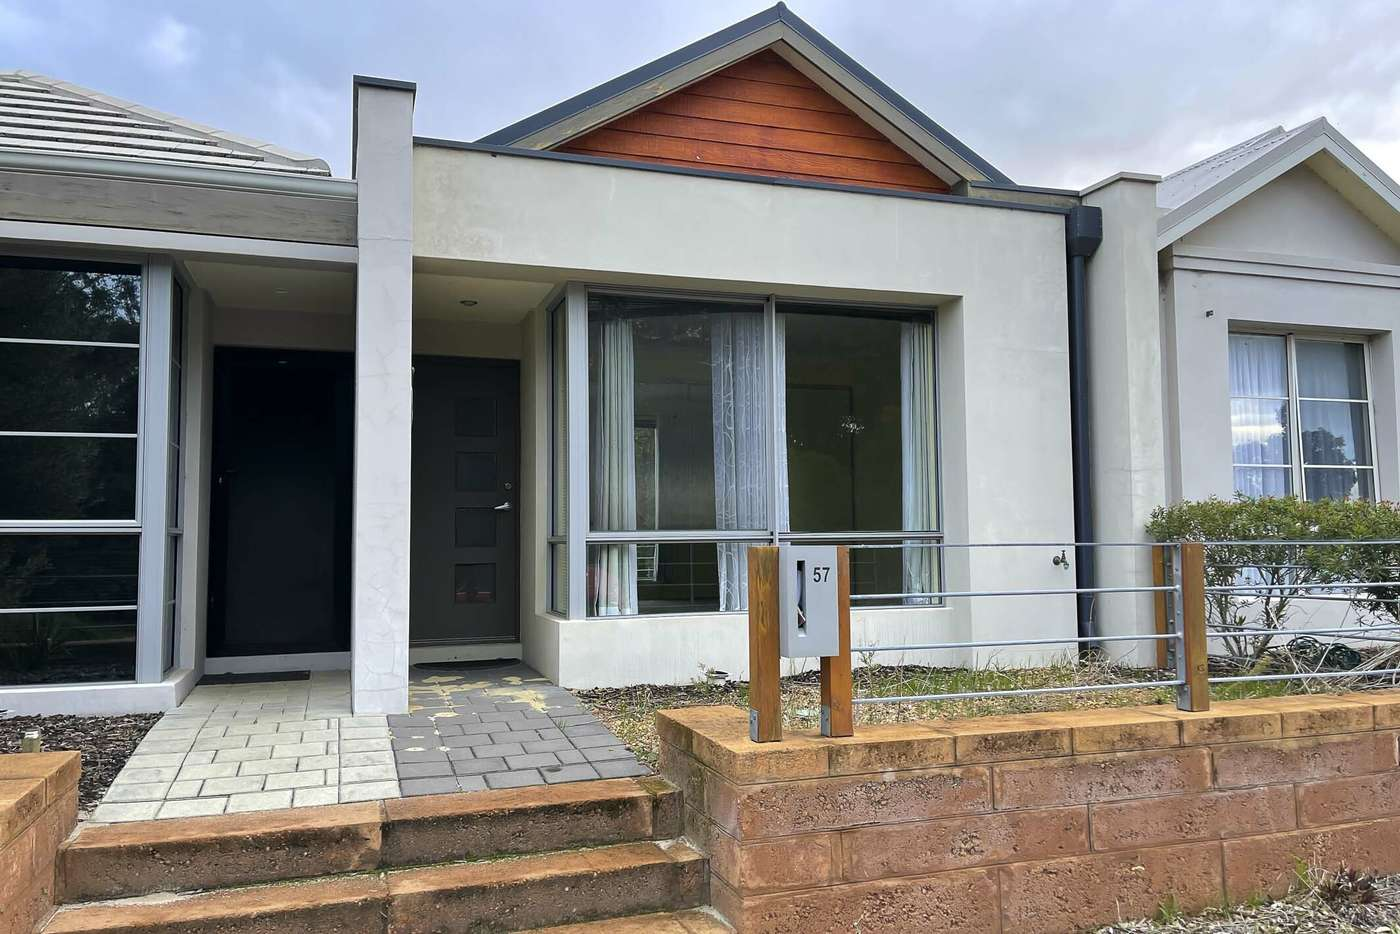 Main view of Homely house listing, 57 Stanbury Crescent, Ellenbrook WA 6069